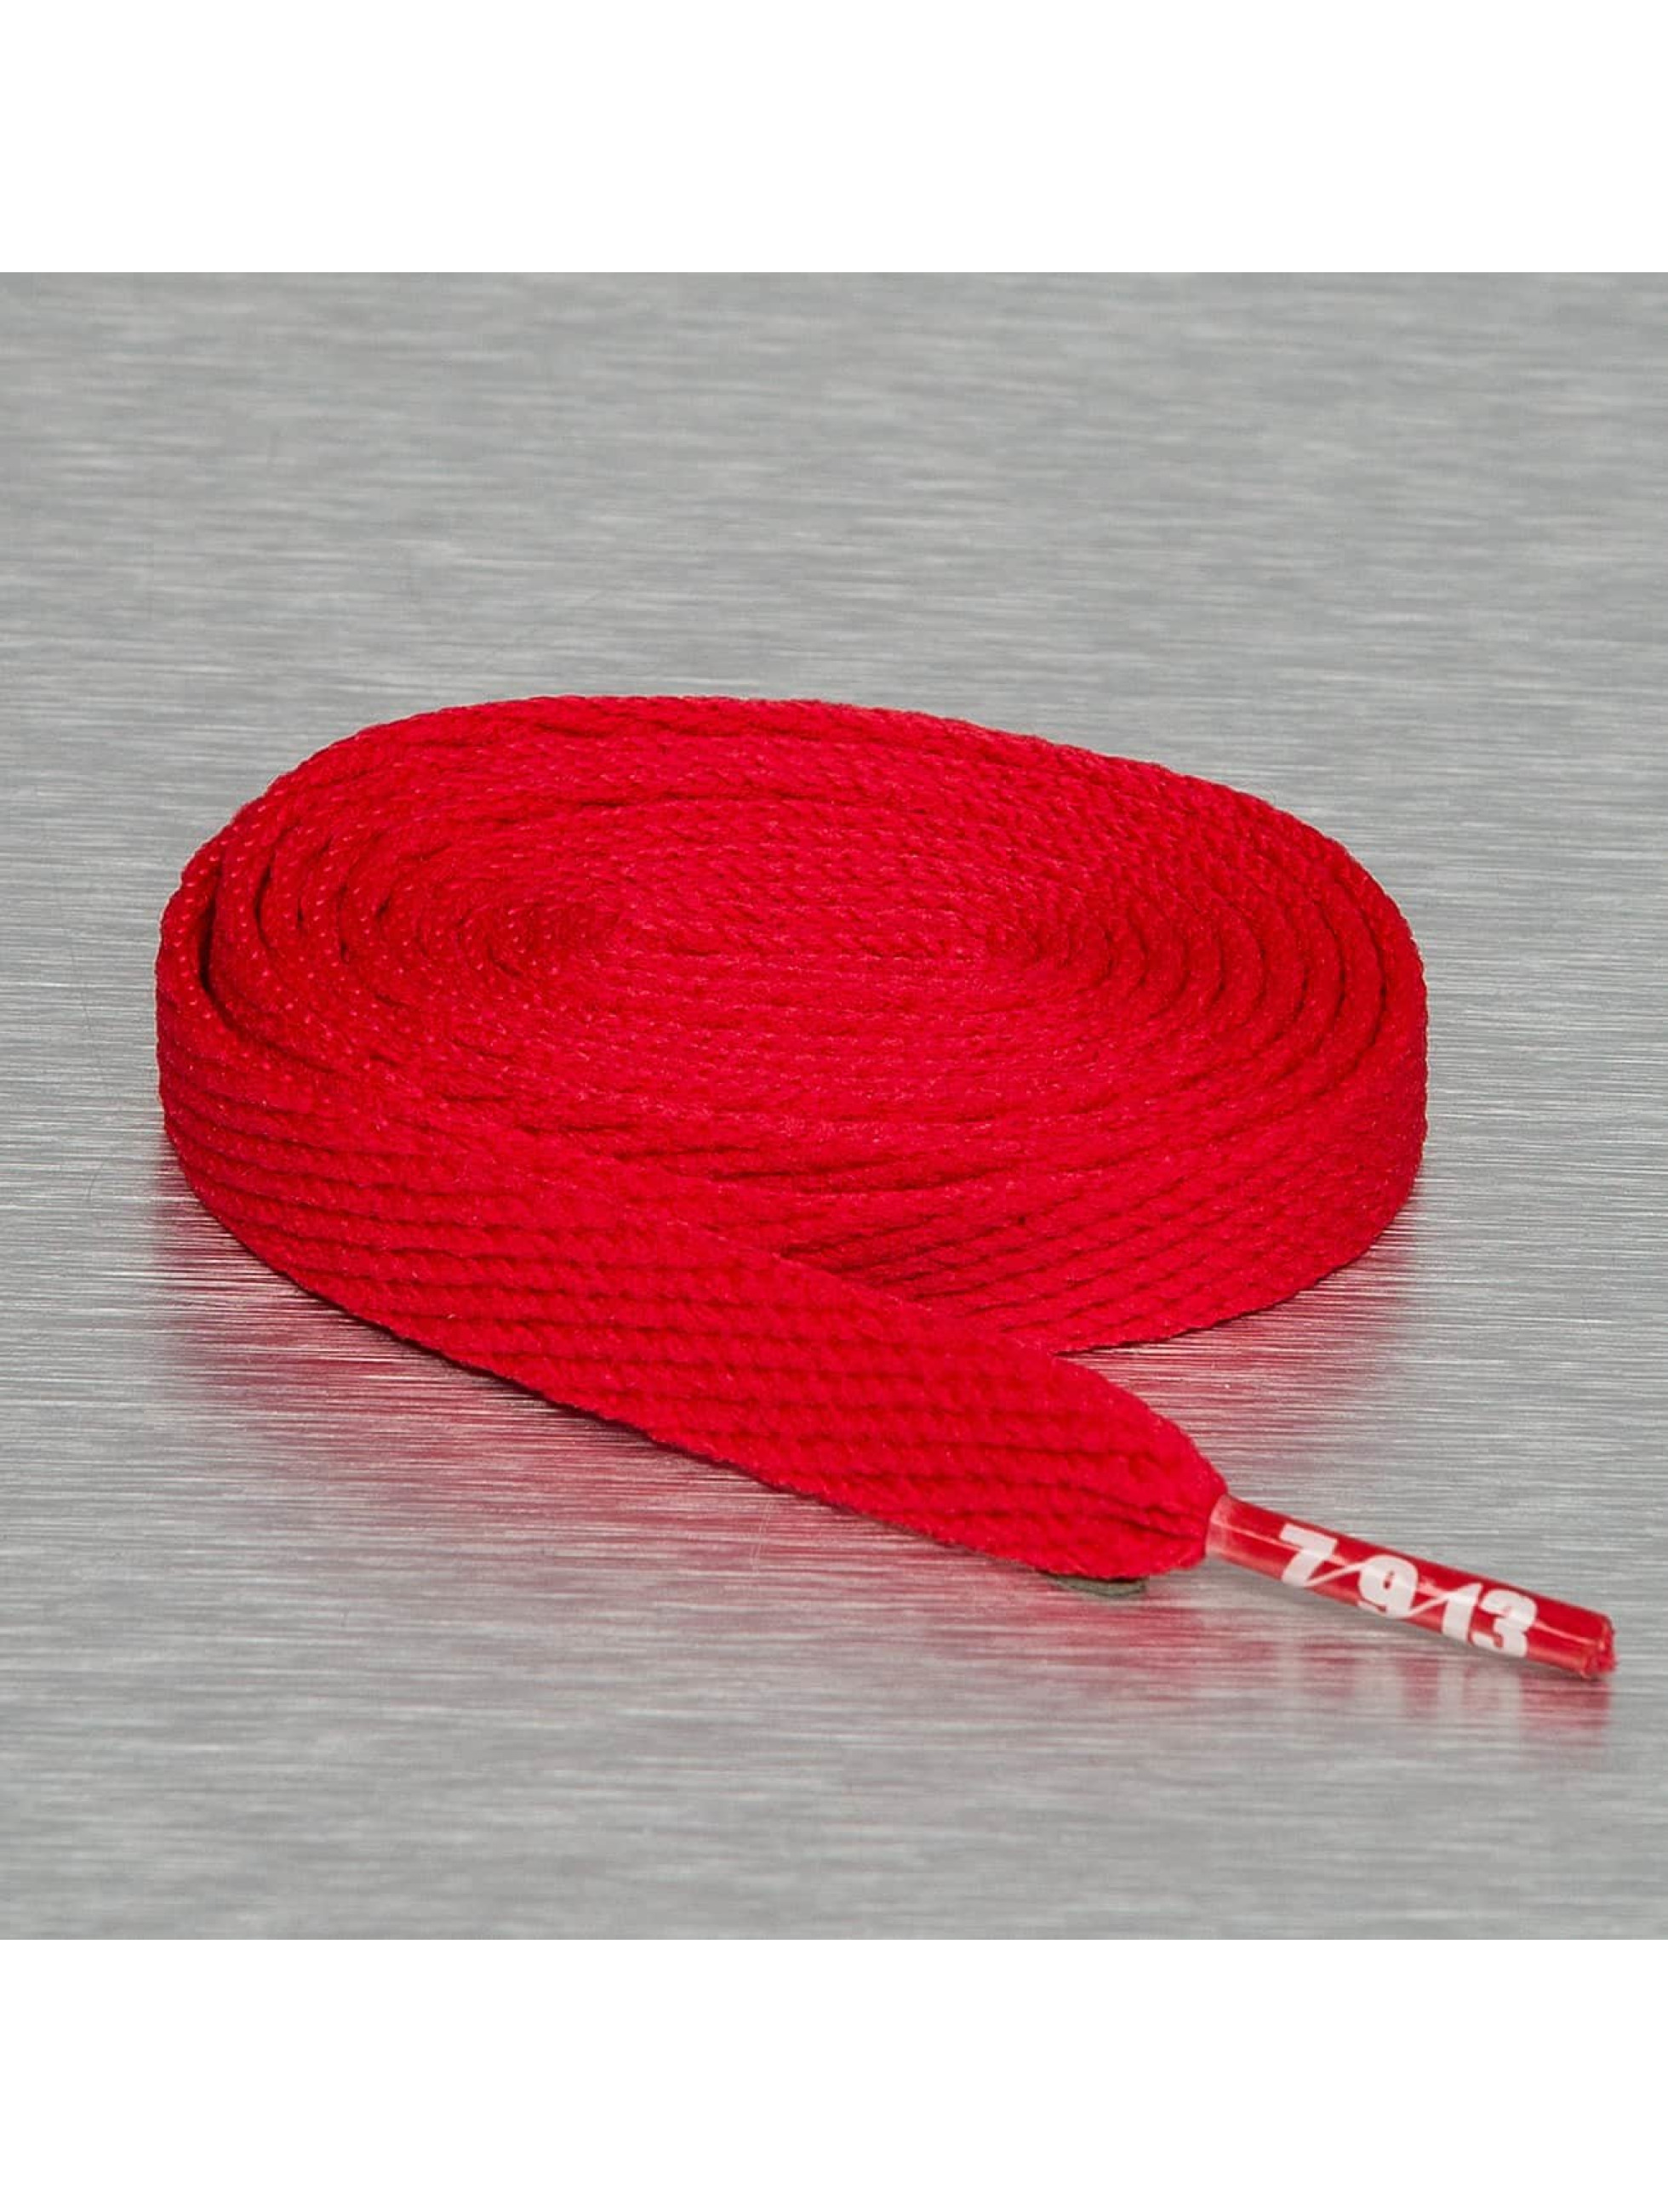 Seven Nine 13 Shoelace Hard Candy Flat red